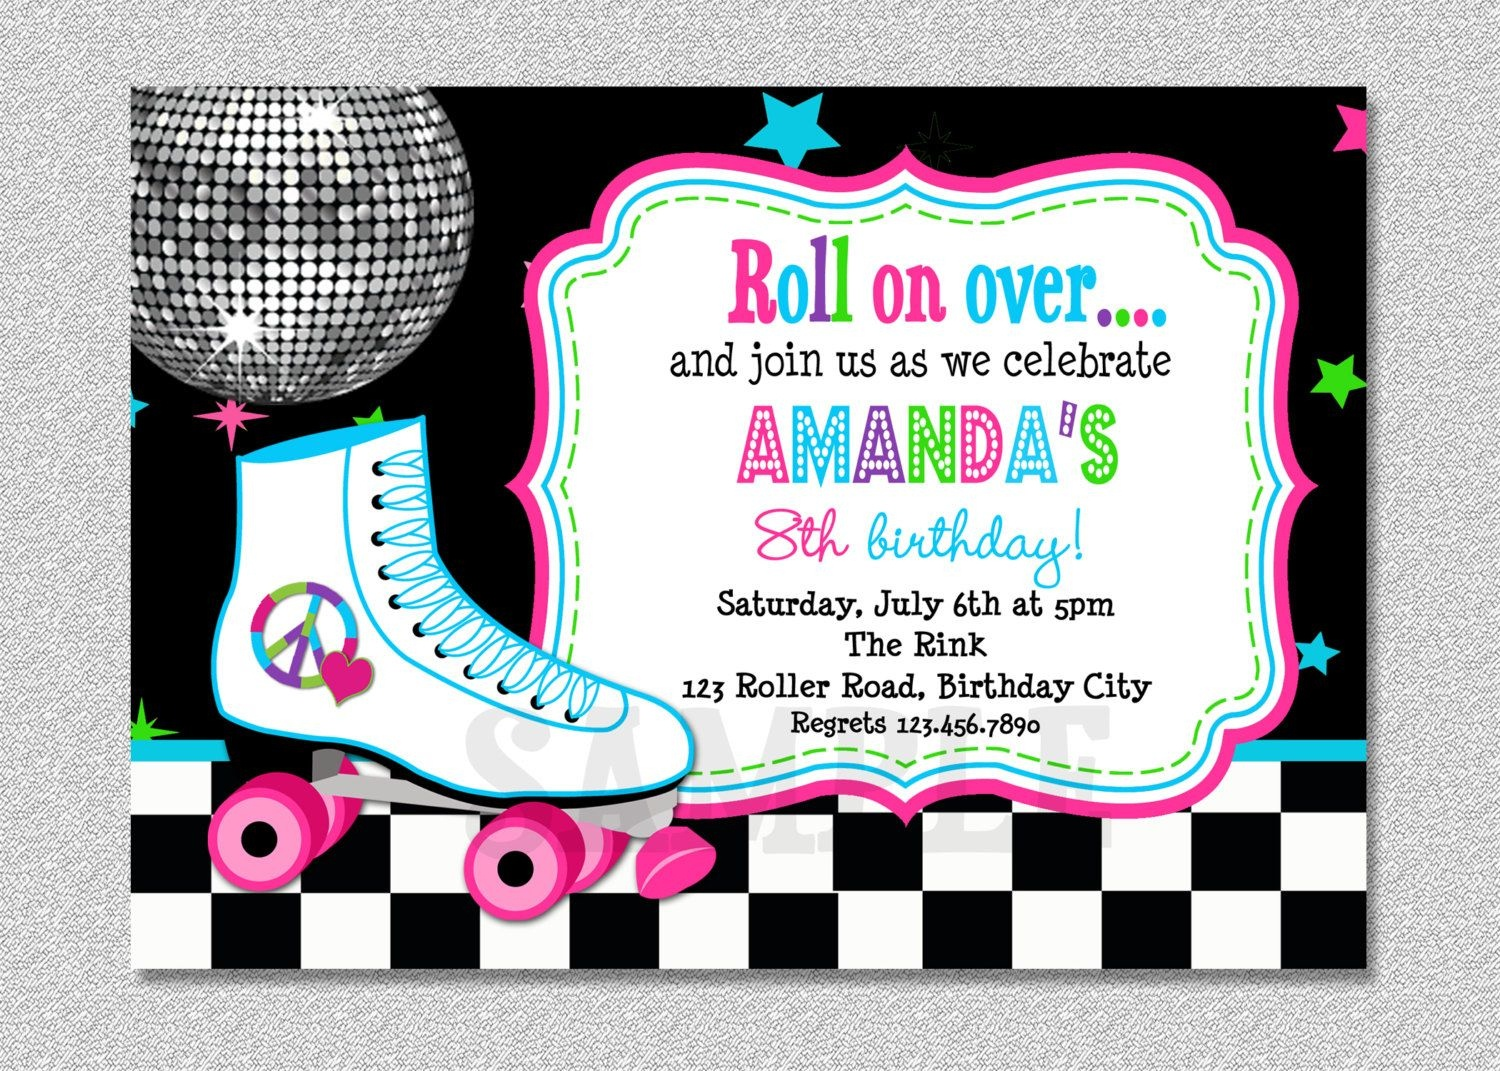 Download Free Template Free Printable Roller Skating Birthday Party - Free Printable Roller Skating Birthday Party Invitations